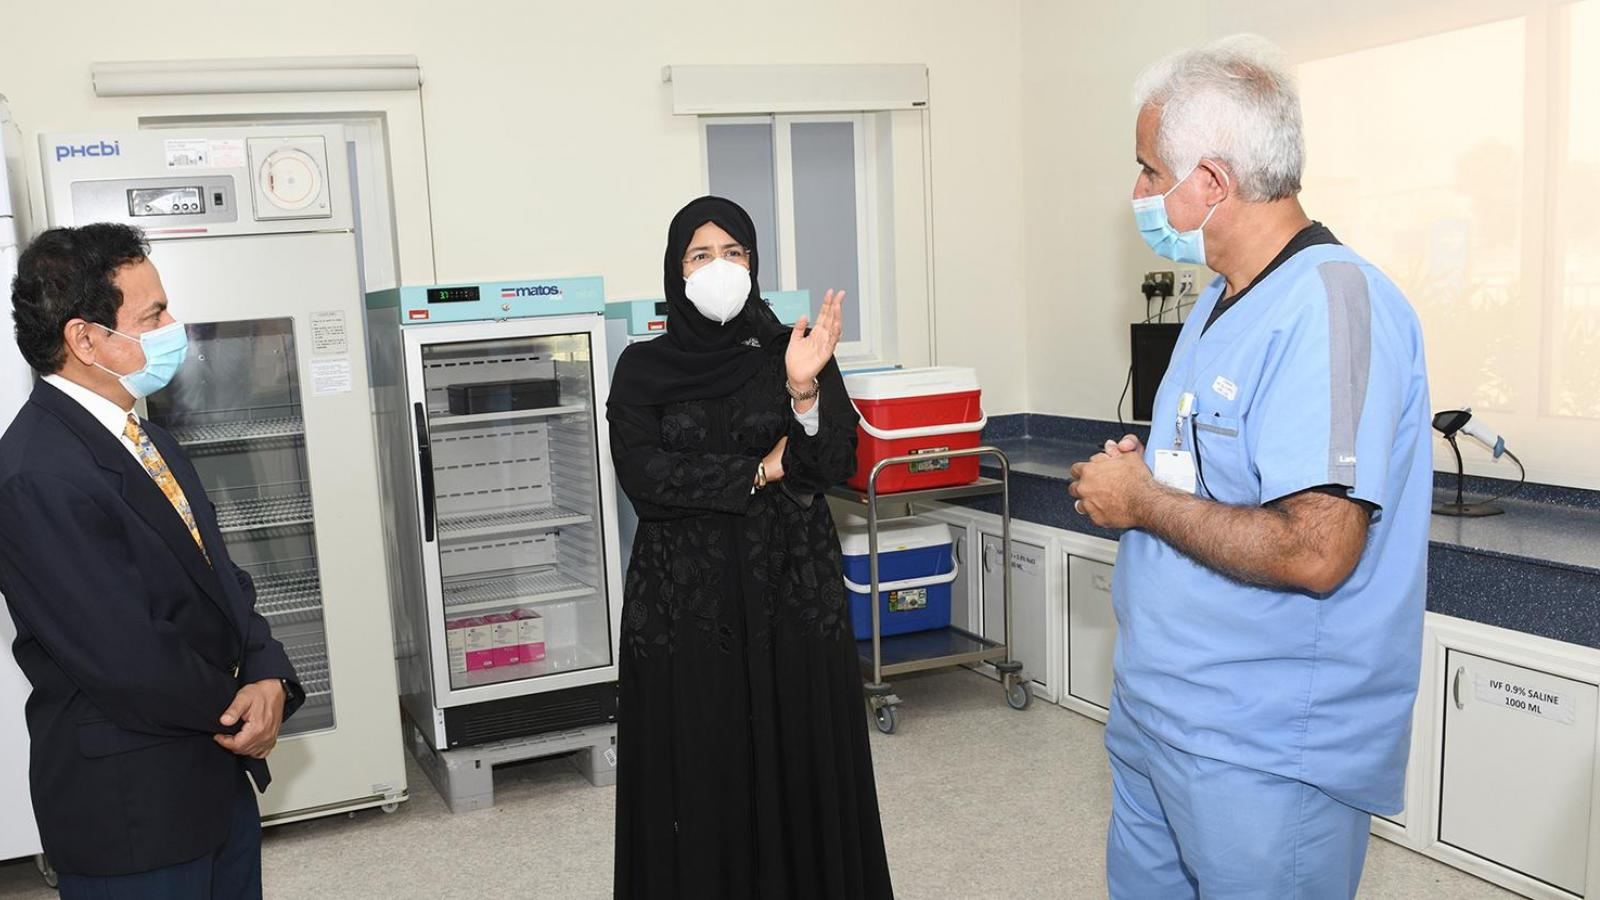 Minister of Public Health visits new COVID-19 vaccination center in Industrial Area